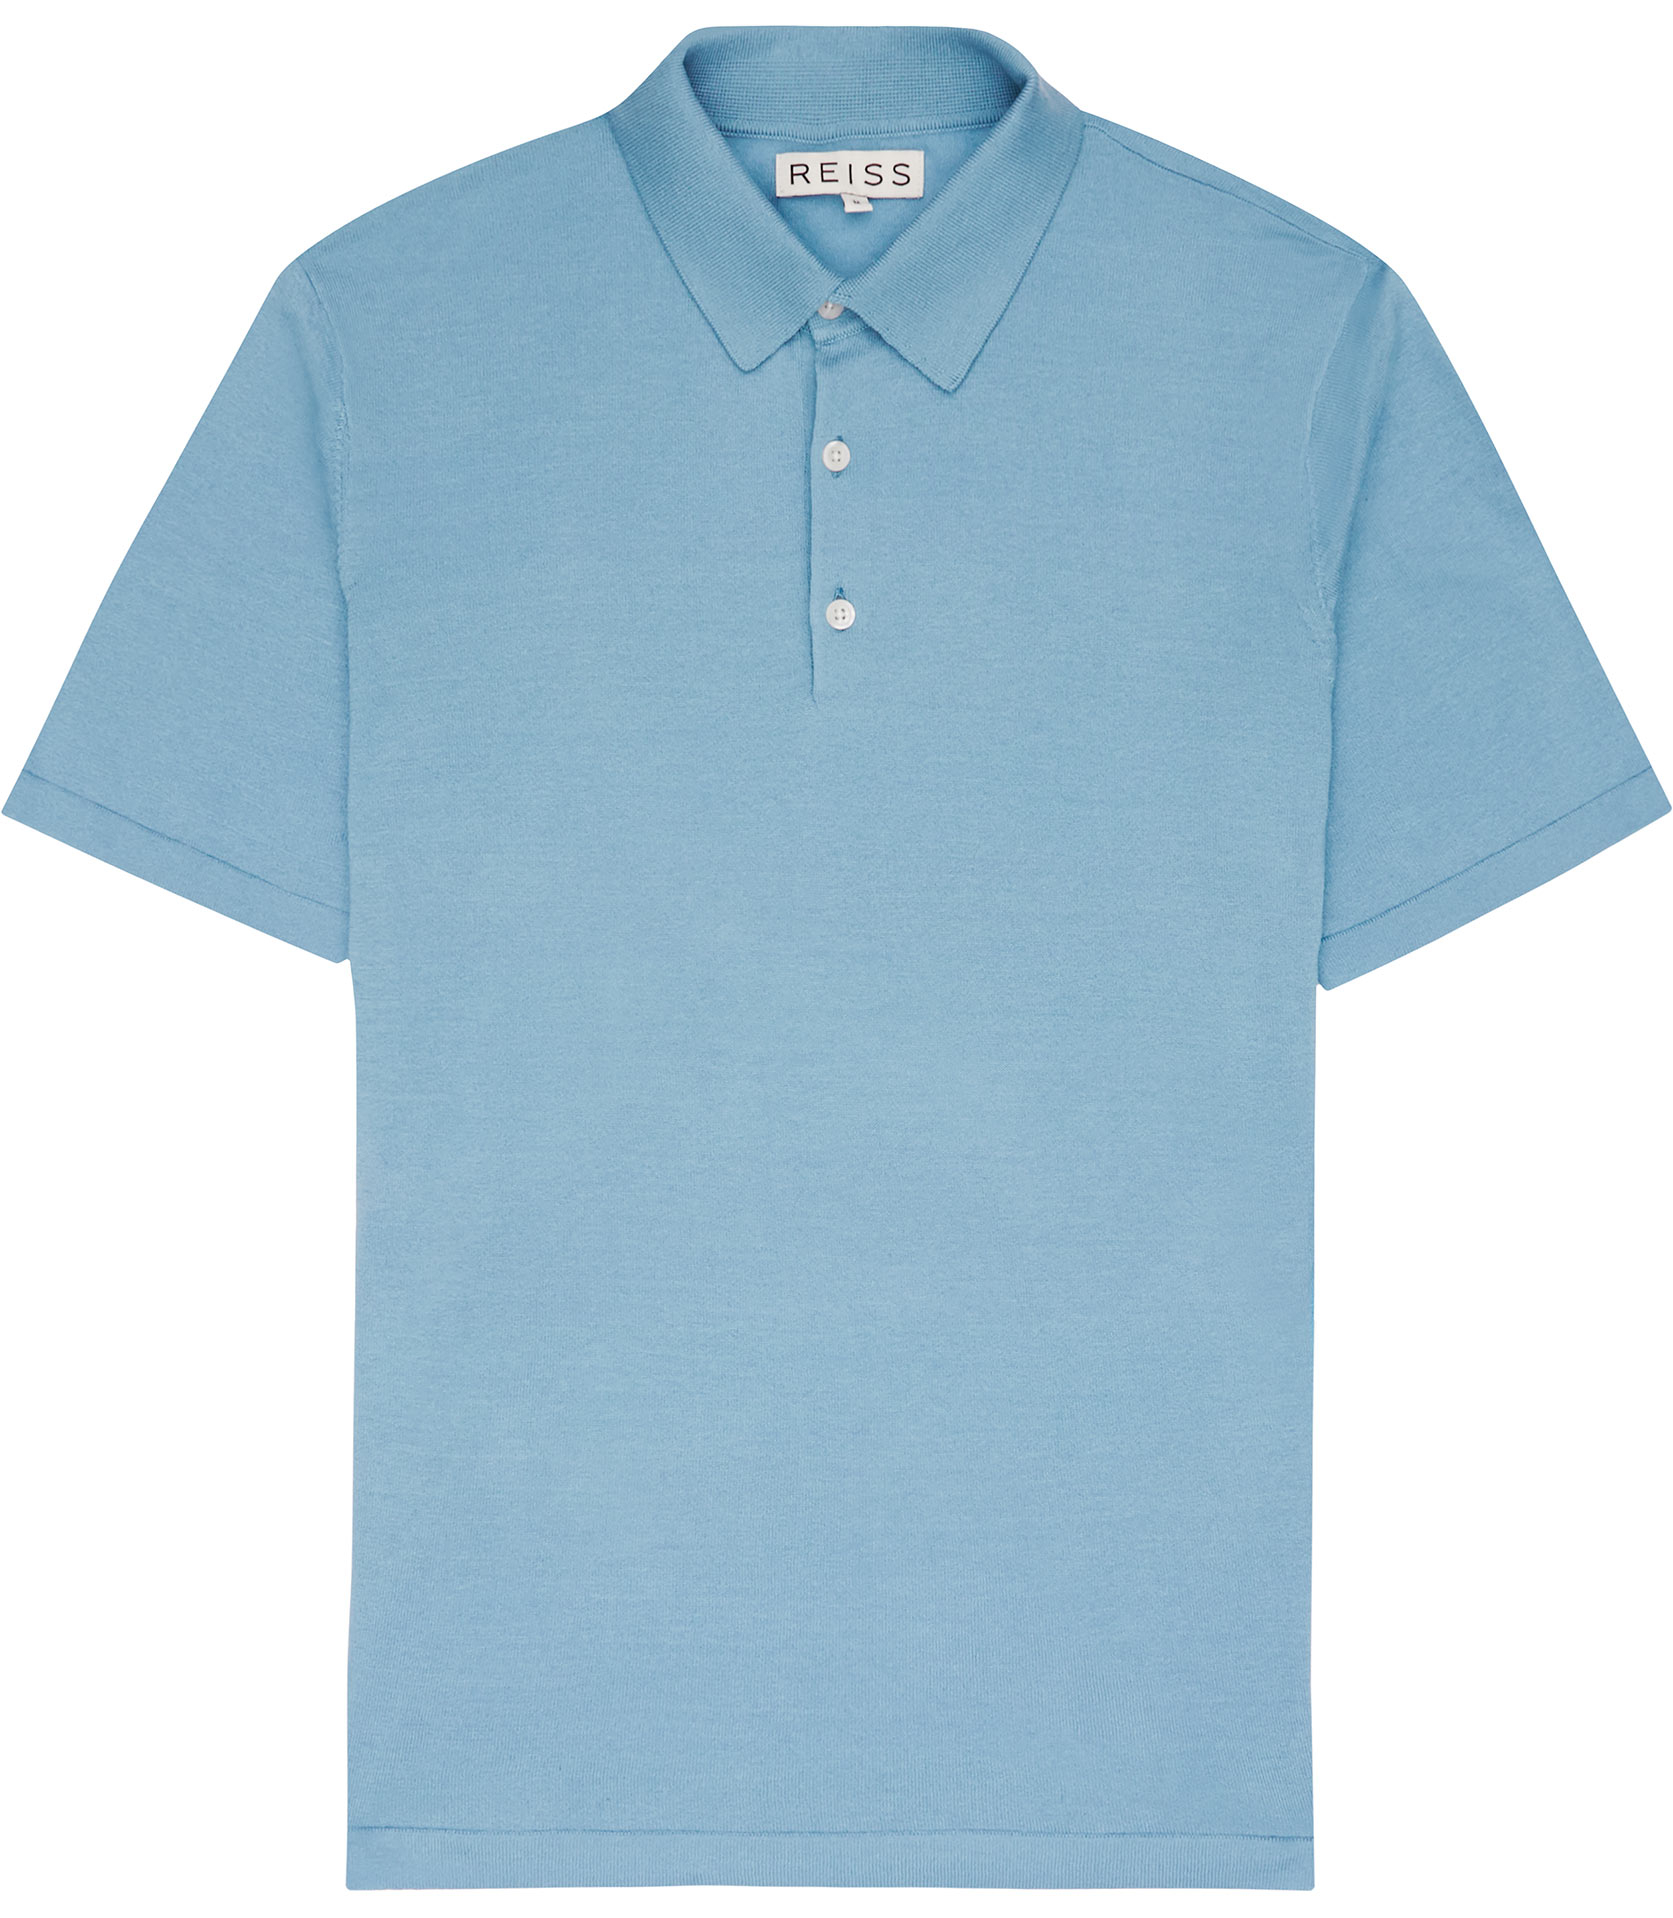 Reiss hewitt knitted polo shirt in blue for men lyst for Knitted polo shirt mens